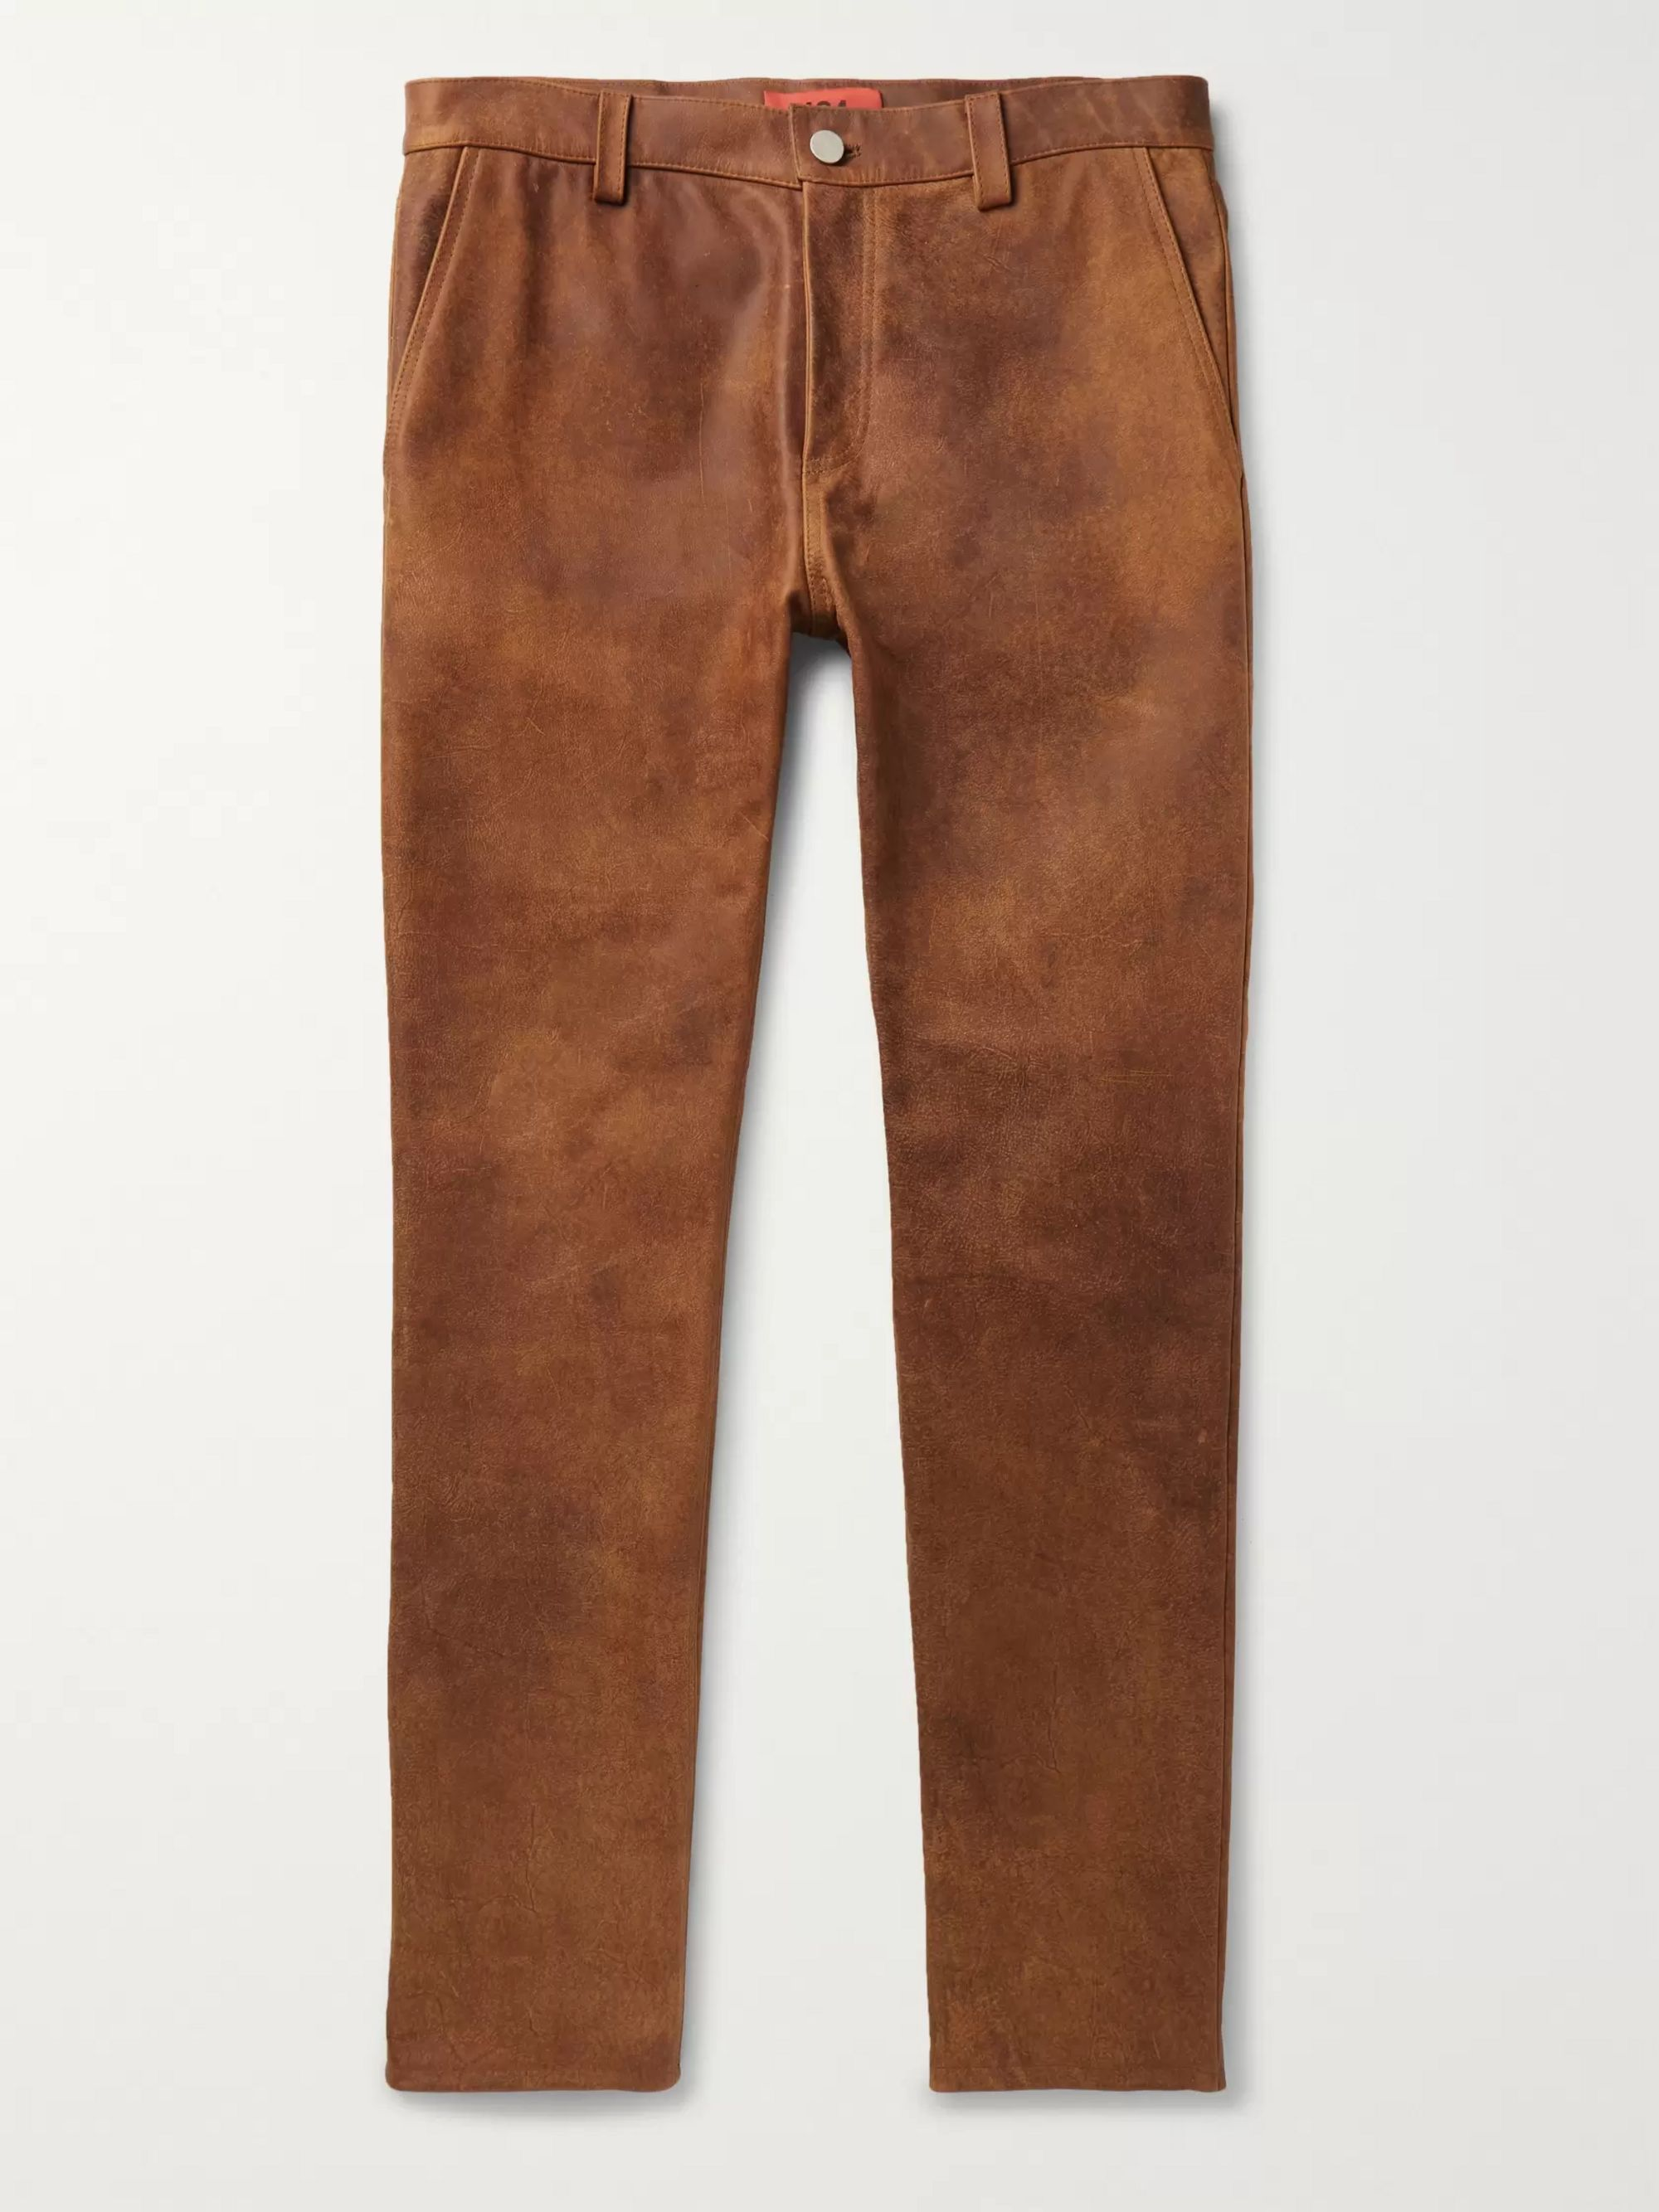 424 Slim-Fit Leather Trousers